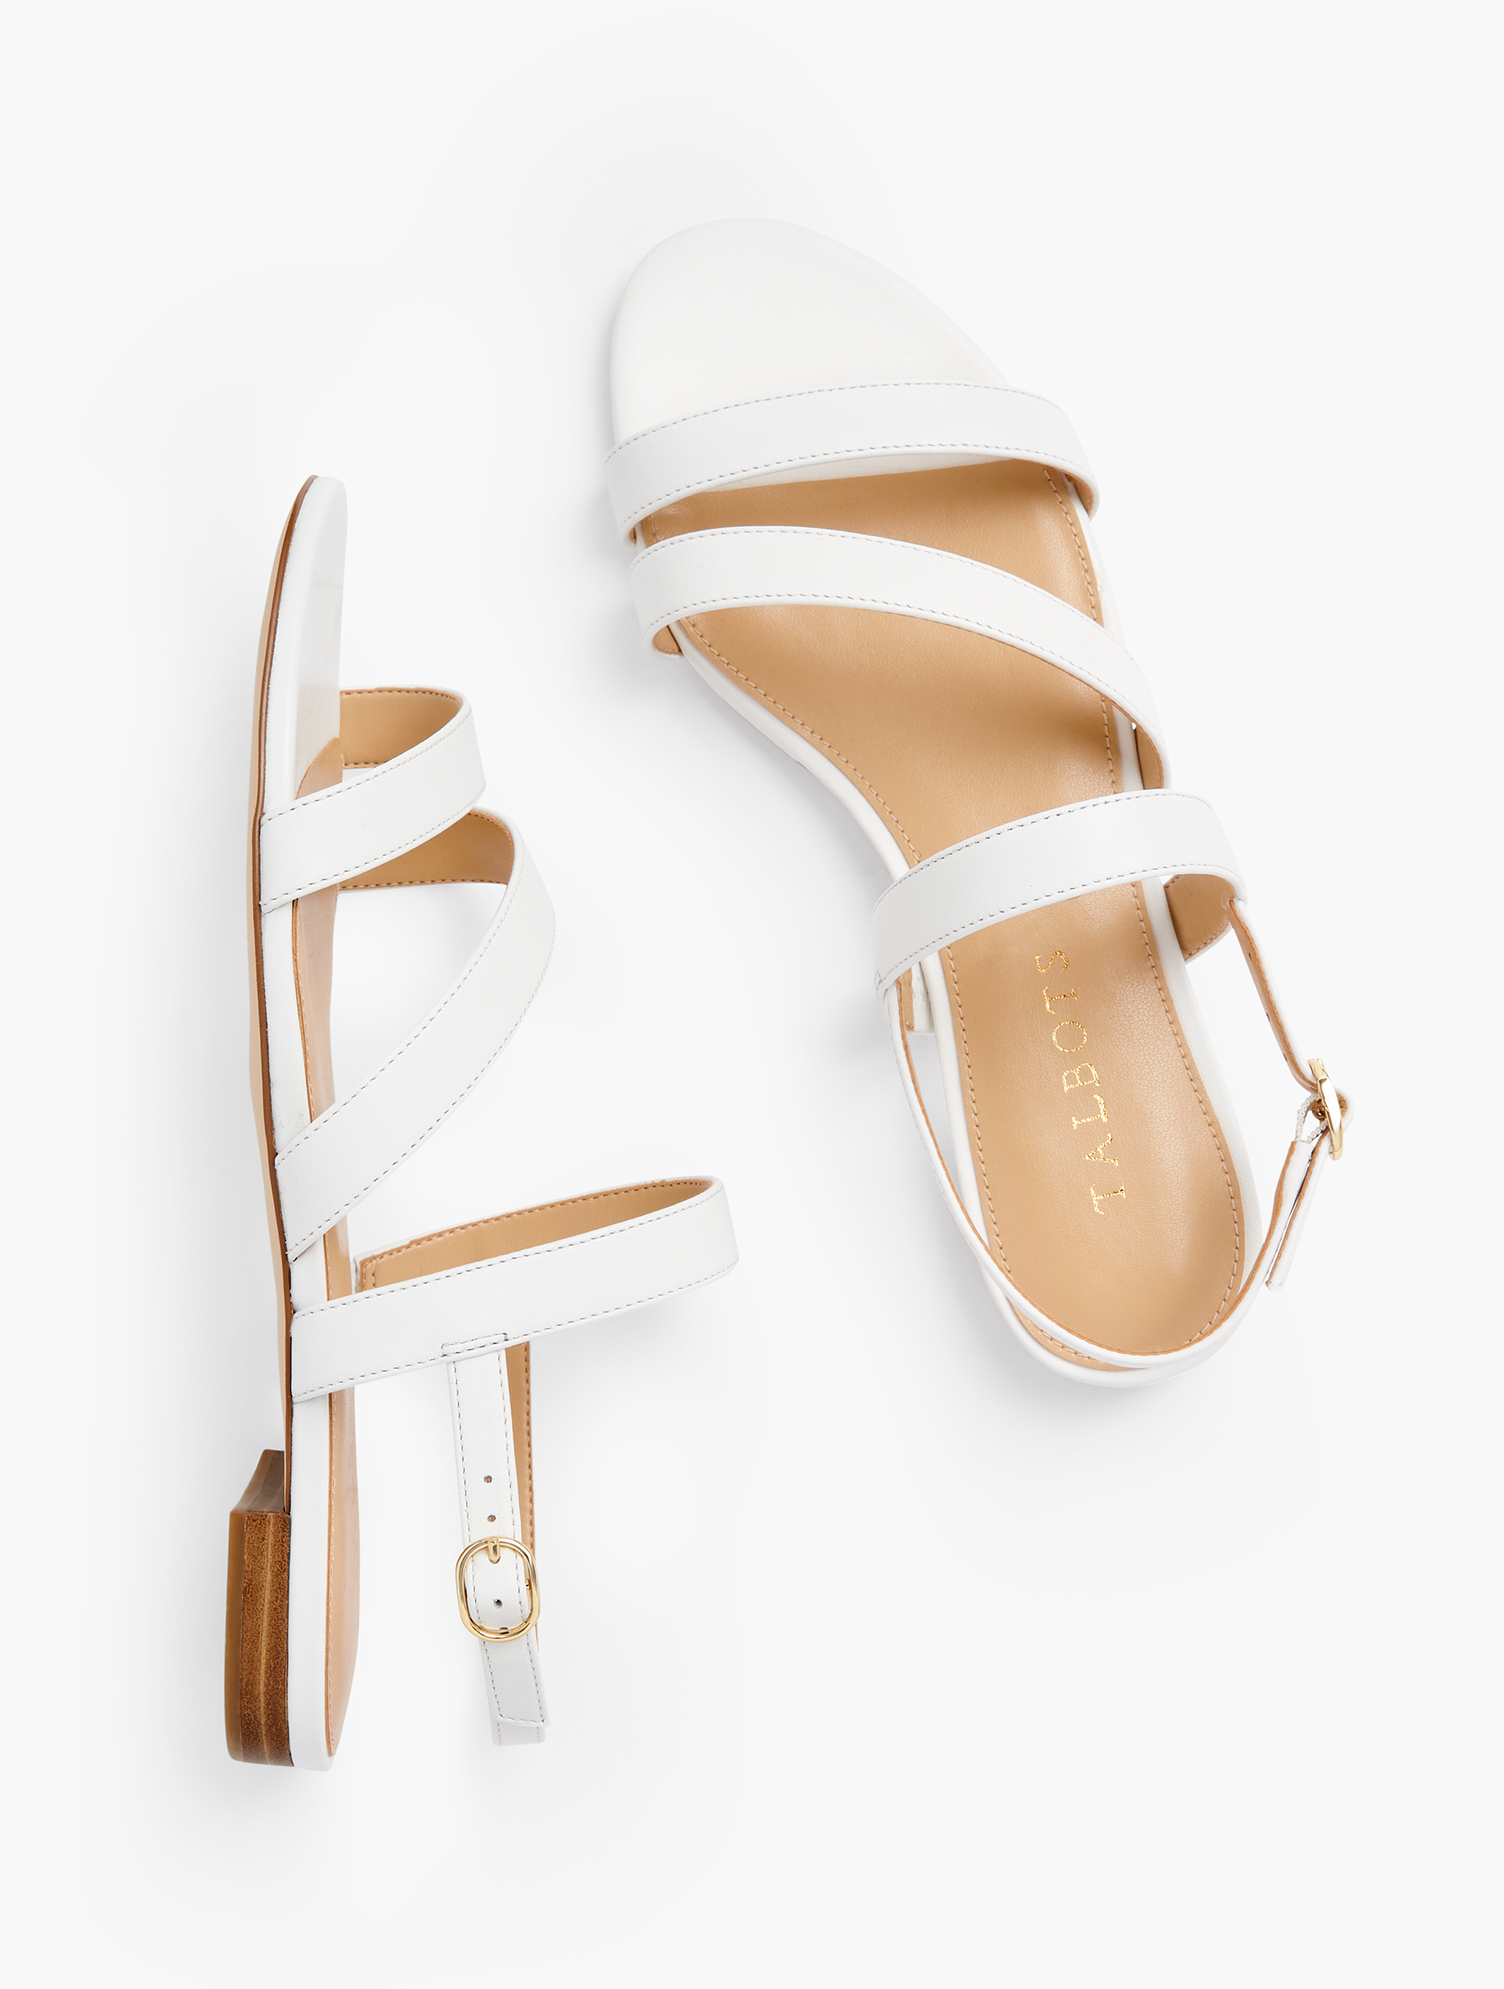 Easy elegance. Our Keri multi-strap sandals were made to be worn dressy or casual. Features 1/2 inches heelFlexible Non Skid Outsole9k Shiny Gold Hardware3Mm Memory Foam FootbedImported Material: 100% Leather Keri Multi Strap Sandals - Nappa - White - 11M Talbots